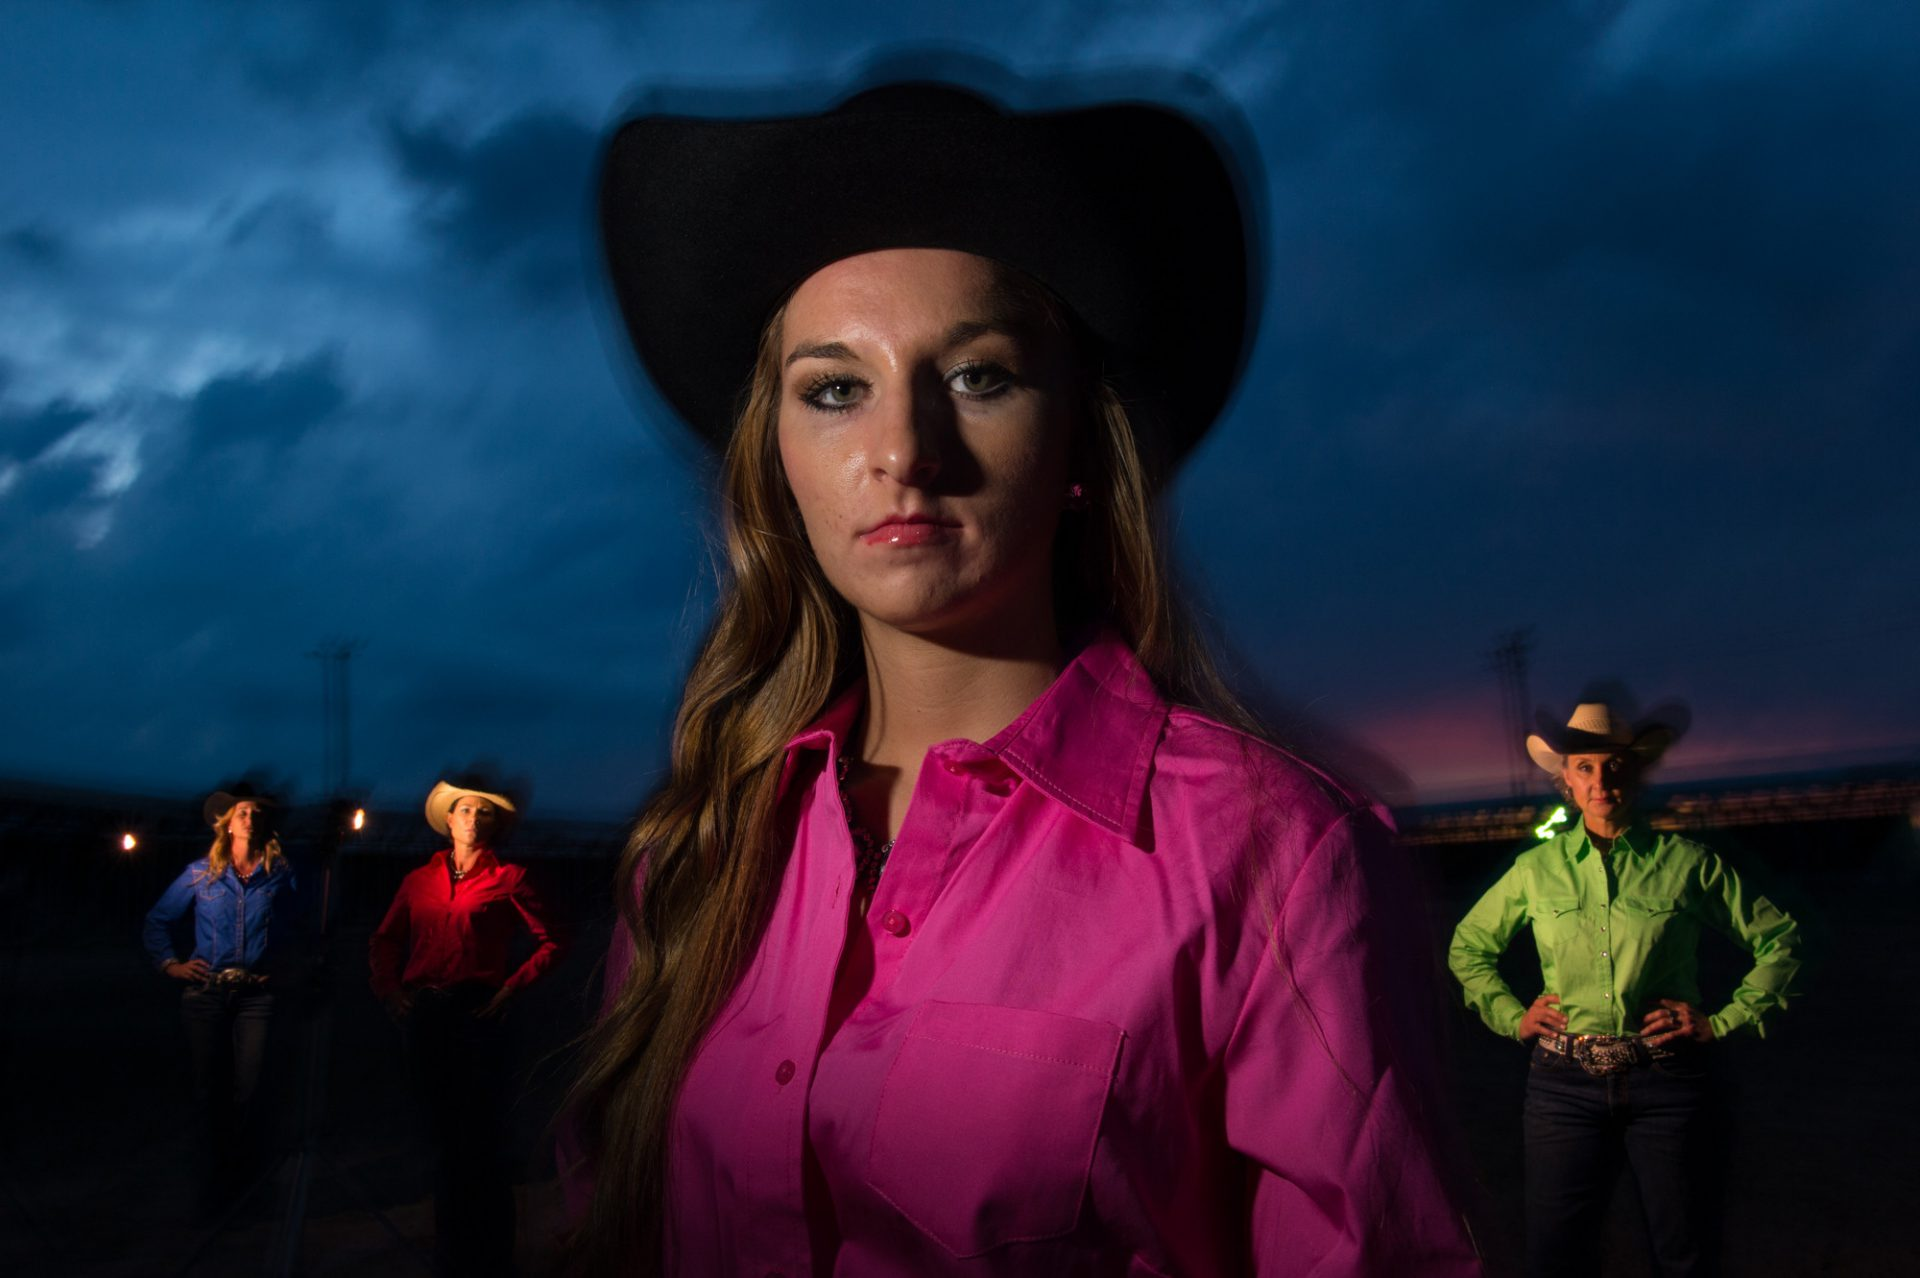 Photo: Rodeo queens pose for a portrait at night.